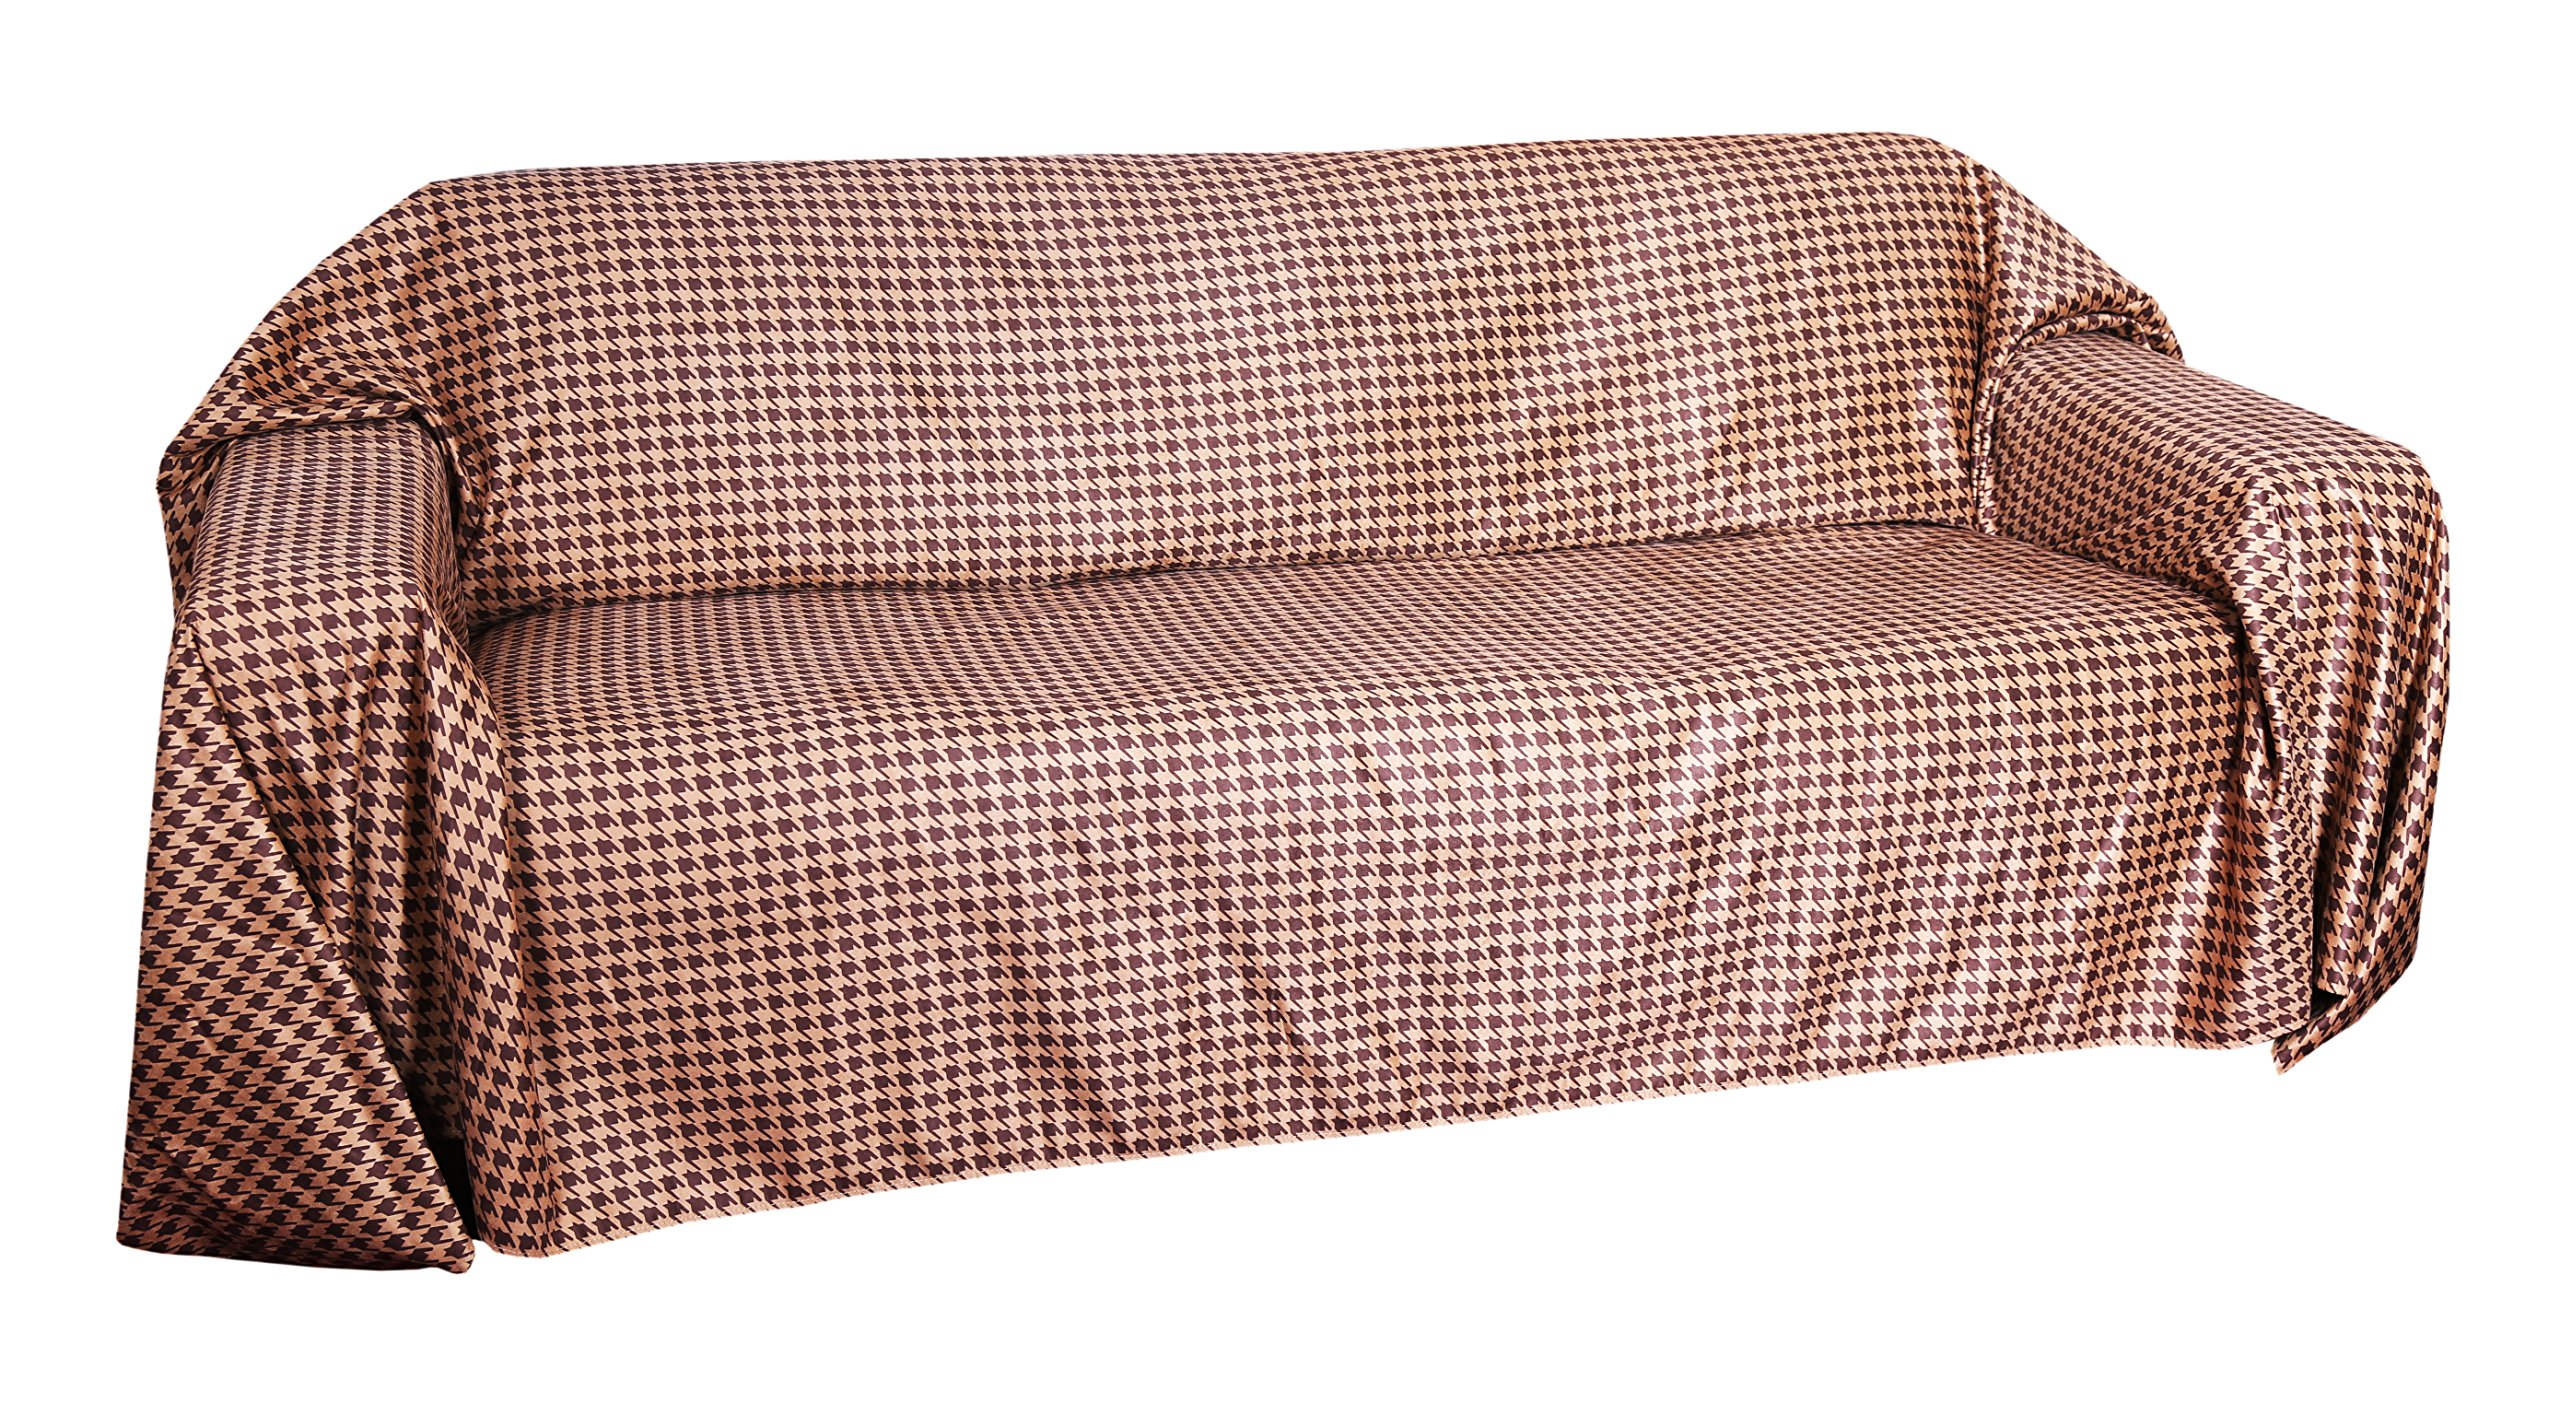 Floppy Ears Design Simple Faux Suede Couch Cover Protector (Large 3 Cushion Couch, Chocolate and Tan Houndstooth Print)